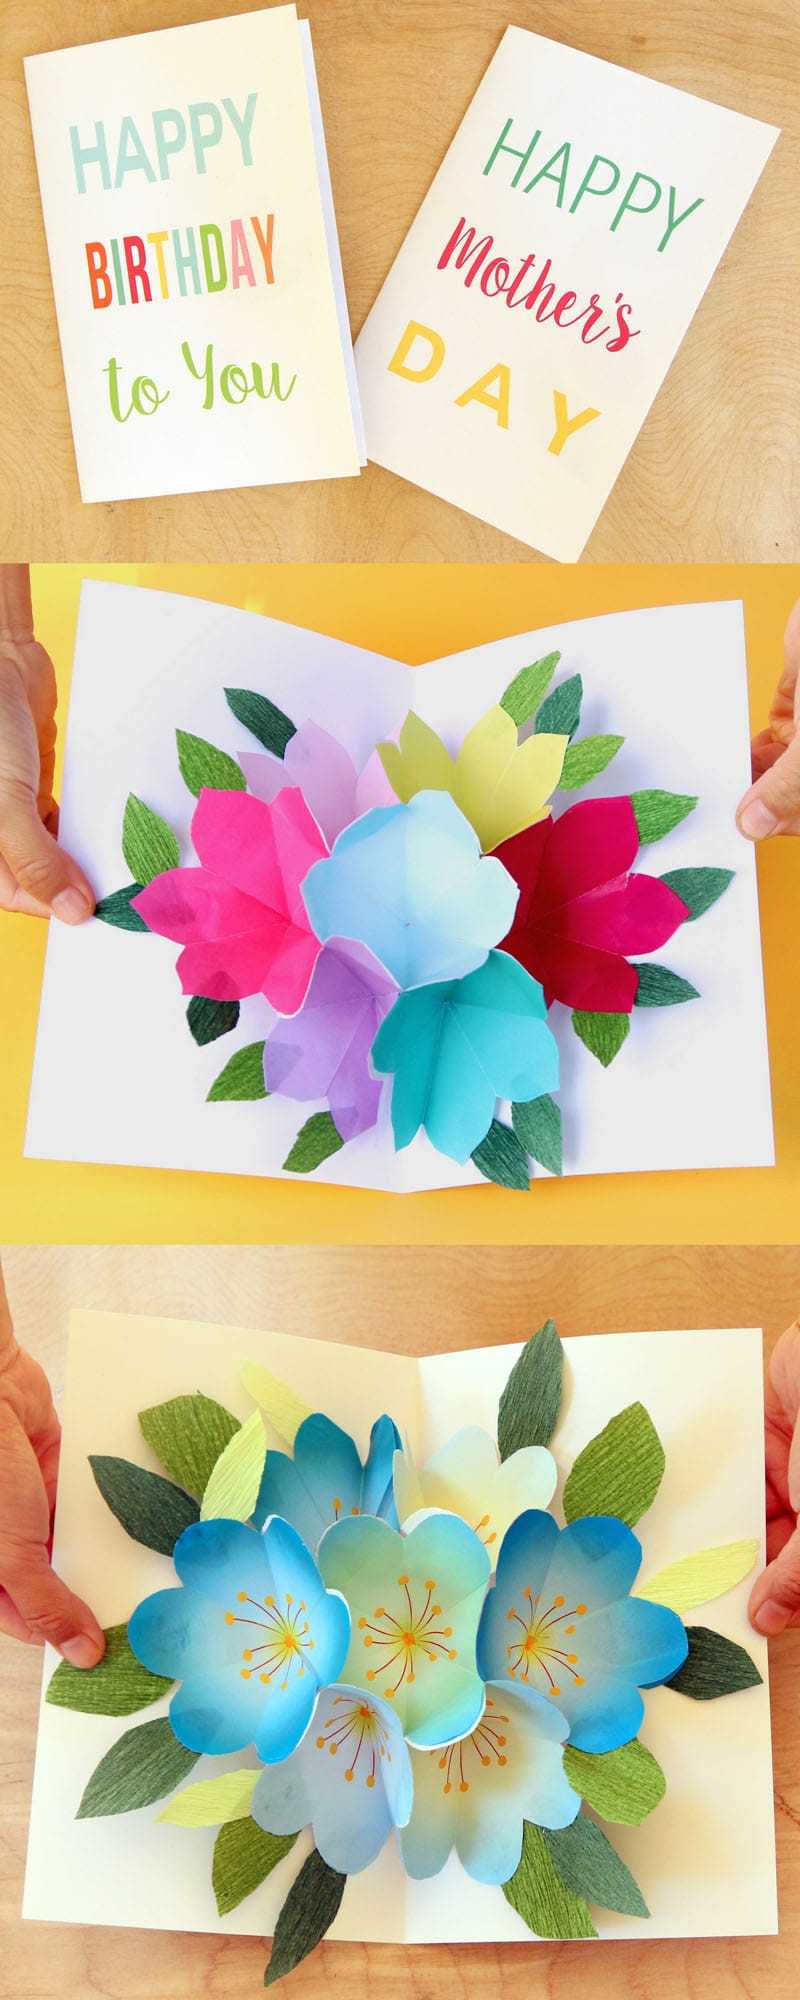 Free Printable Happy Birthday Card With Pop Up Bouquet - A Piece Of - Free Printable Happy Birthday Cards For Dad